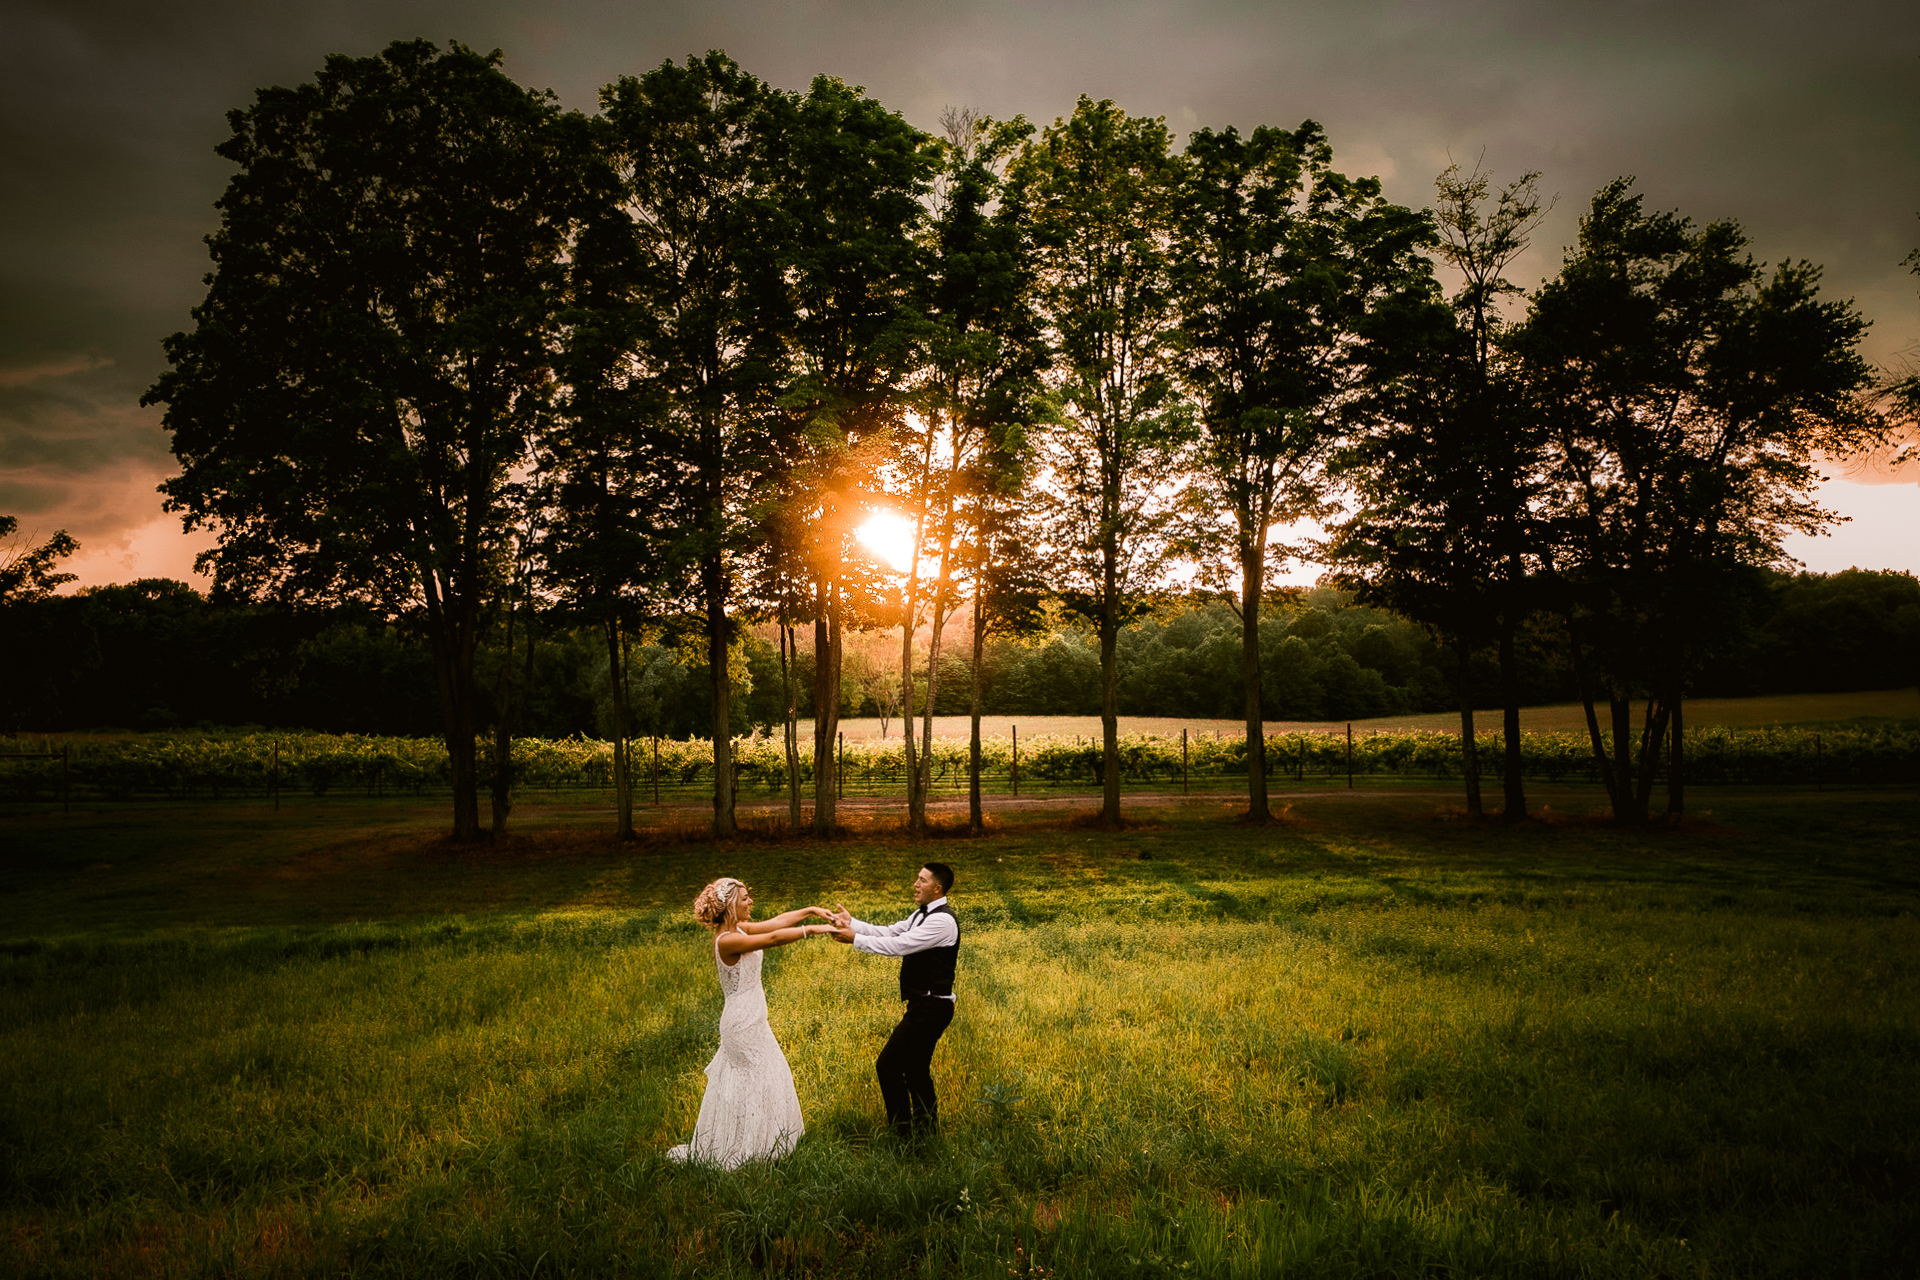 Magnanini wedding photographer